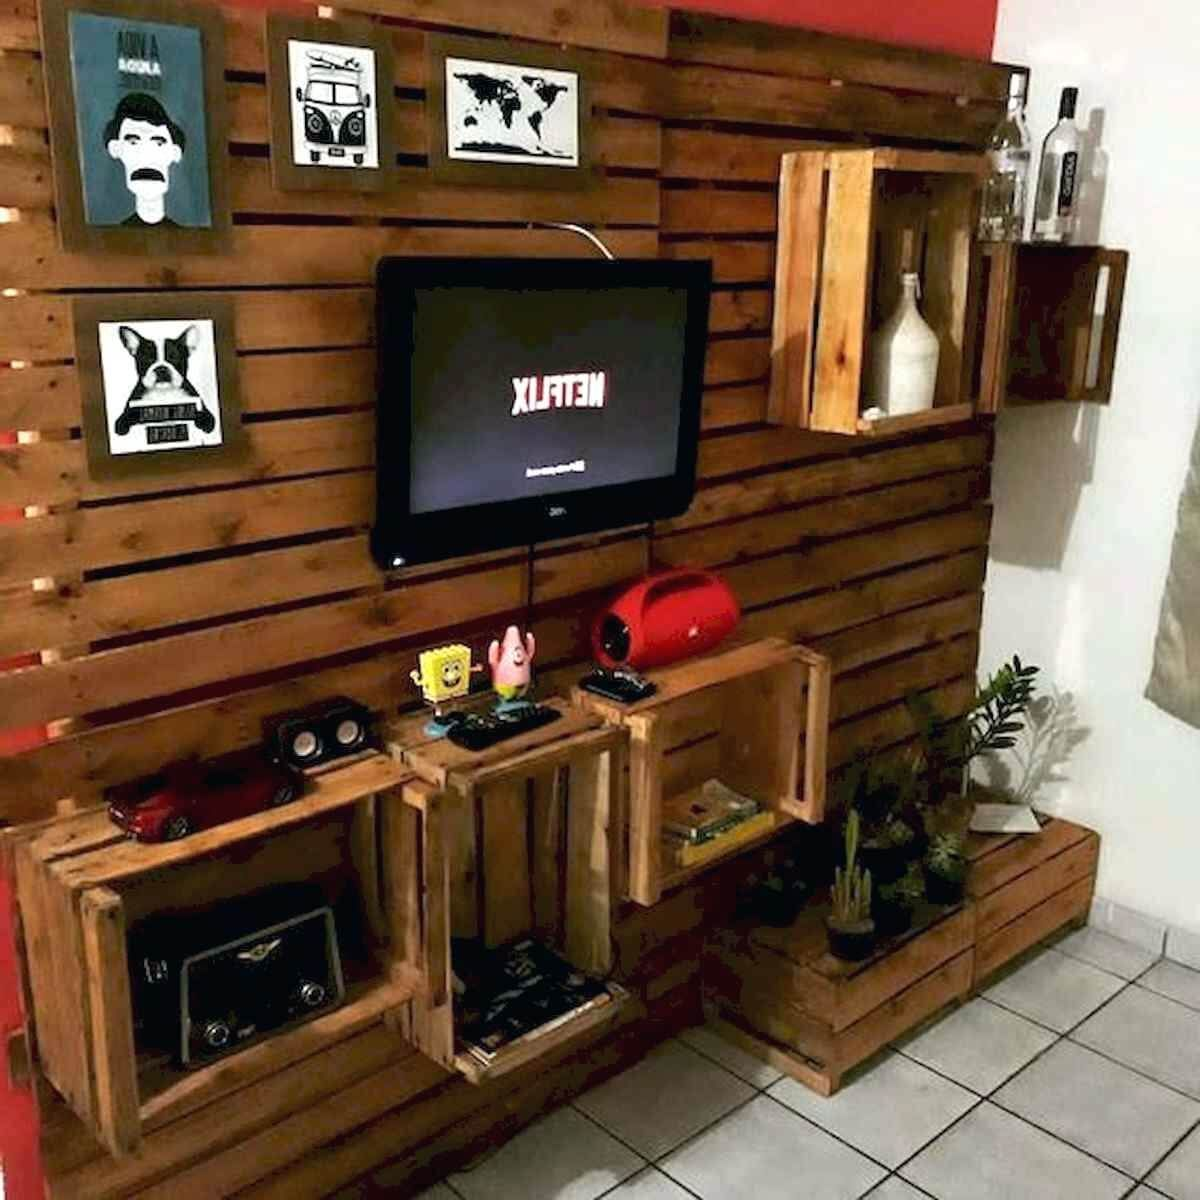 45 Super Coole Diy Projekte Paletten Tv Stander Plane Design Ideen In 2020 Tv Stand Plans Cool Diy Projects Pallet Tv Stand